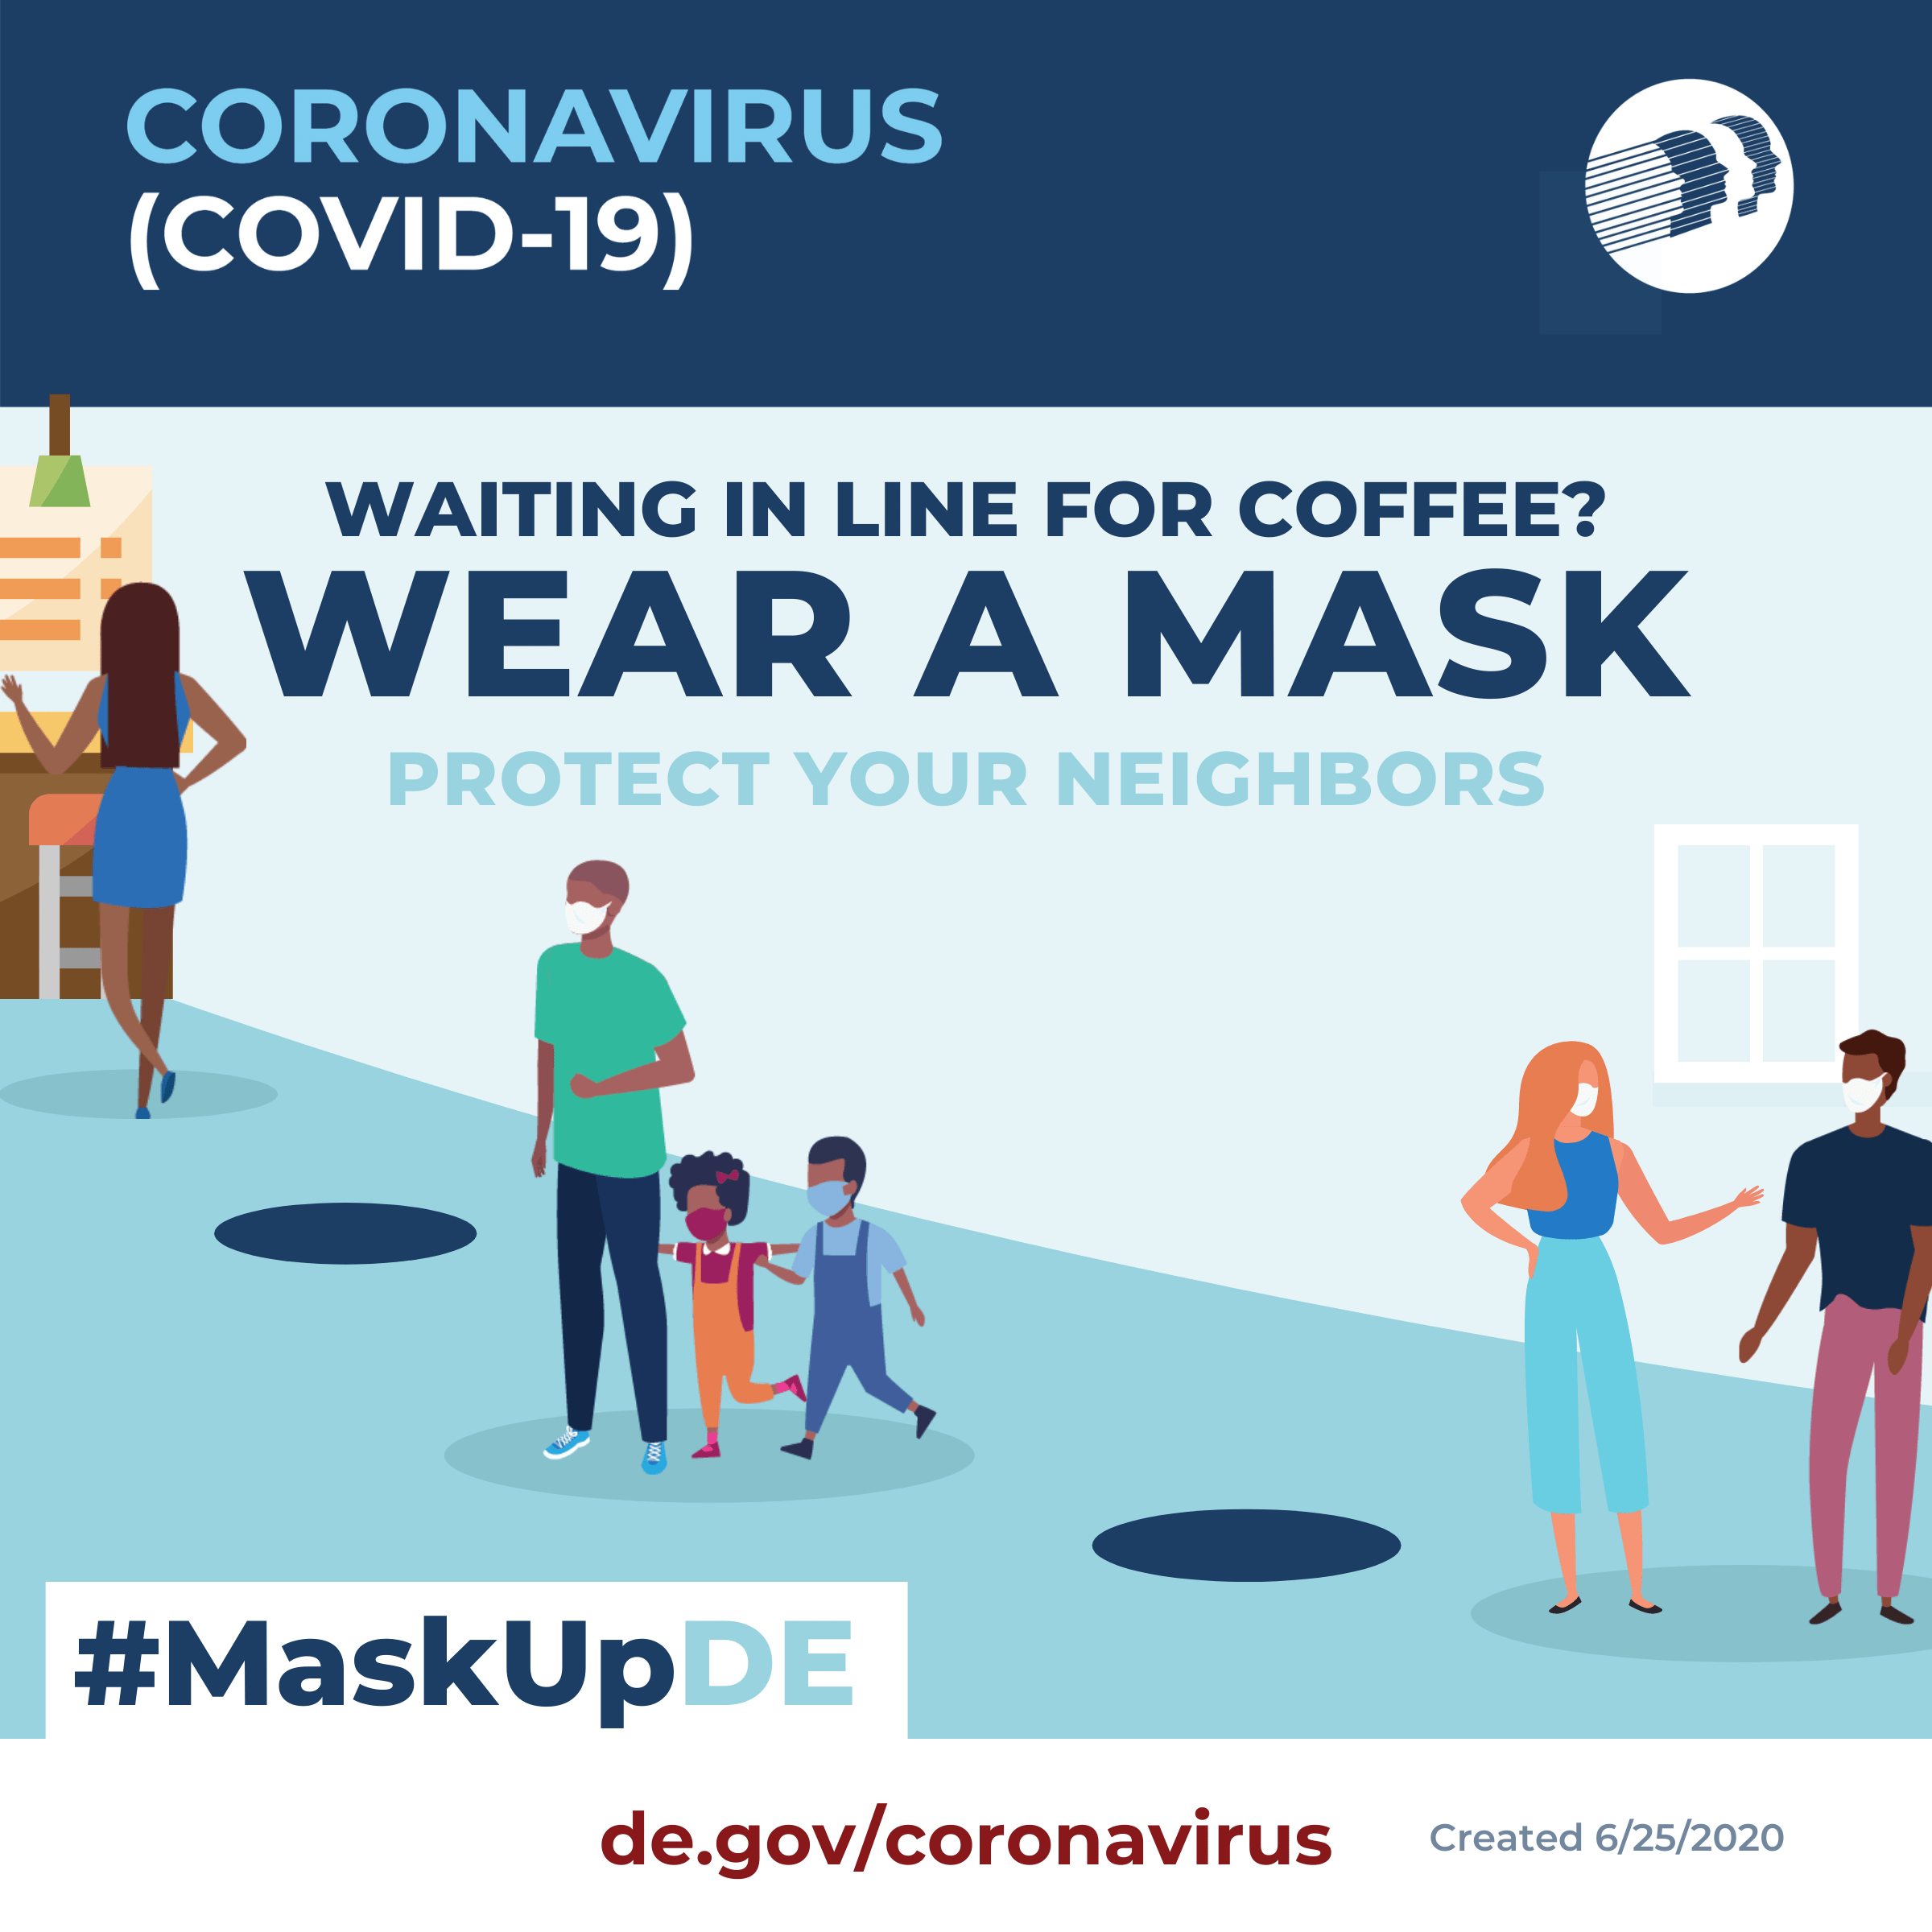 Wear a mask. Protect yourself and others.